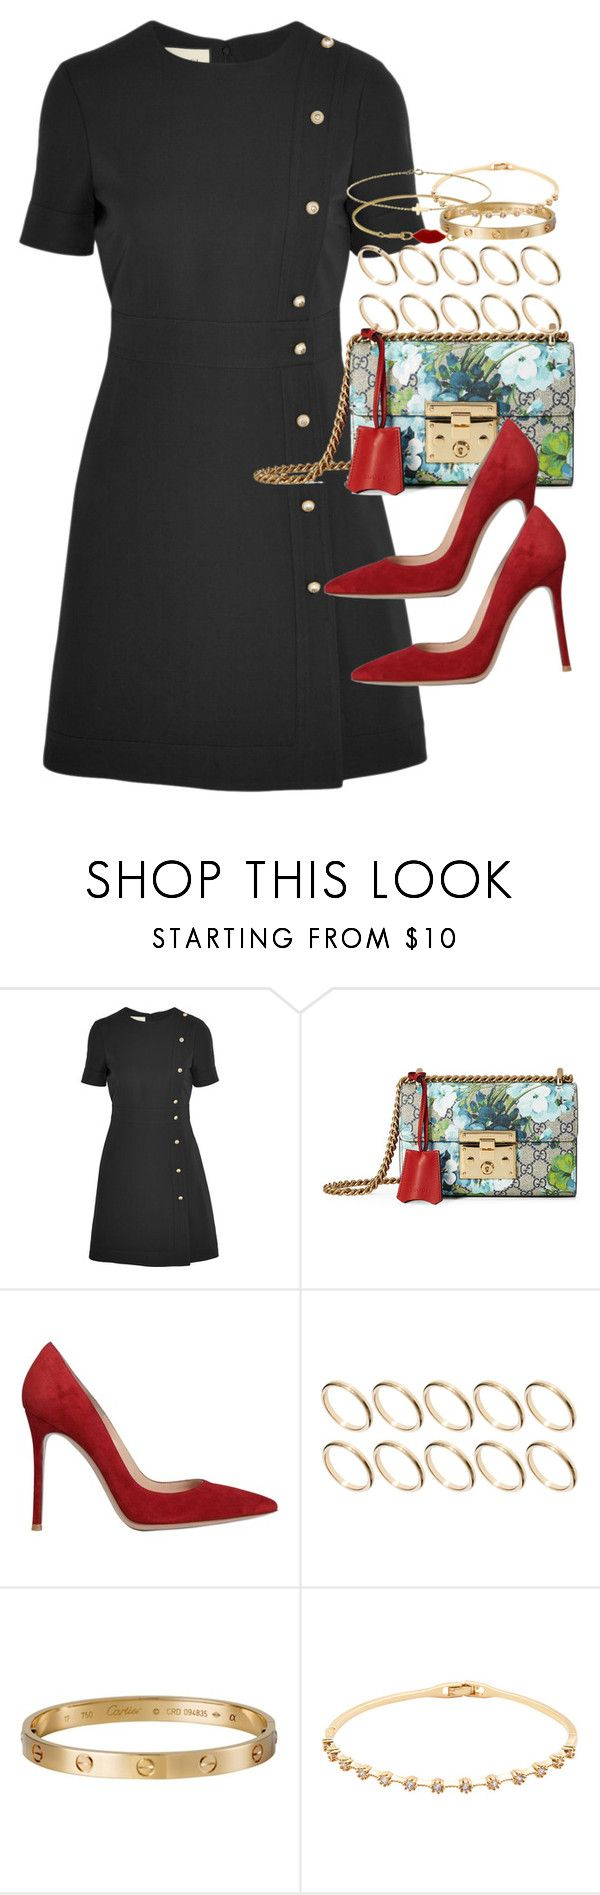 """""""Sin título #4257"""" by hellomissapple on Polyvore featuring moda, Gucci, Gianvito Rossi, ASOS, Cartier y Minor Obsessions"""